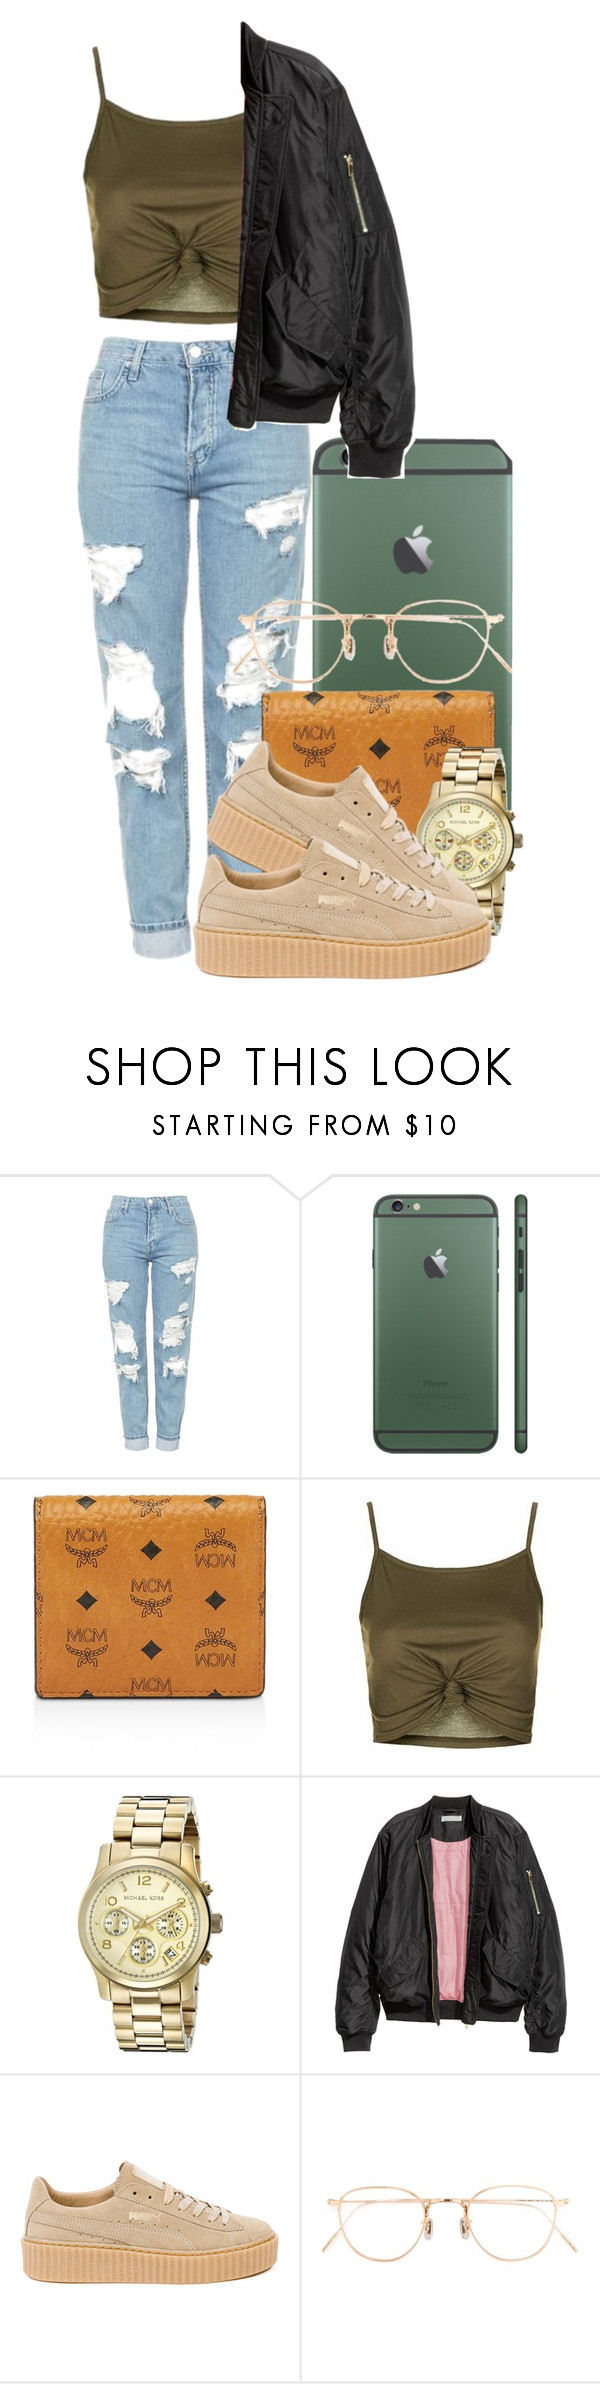 """""""-✨👅🍃"""" by shellyzz ❤ liked on Polyvore featuring Topshop, MCM, Michael Kors, H&M, Puma and Eyevan 7285"""